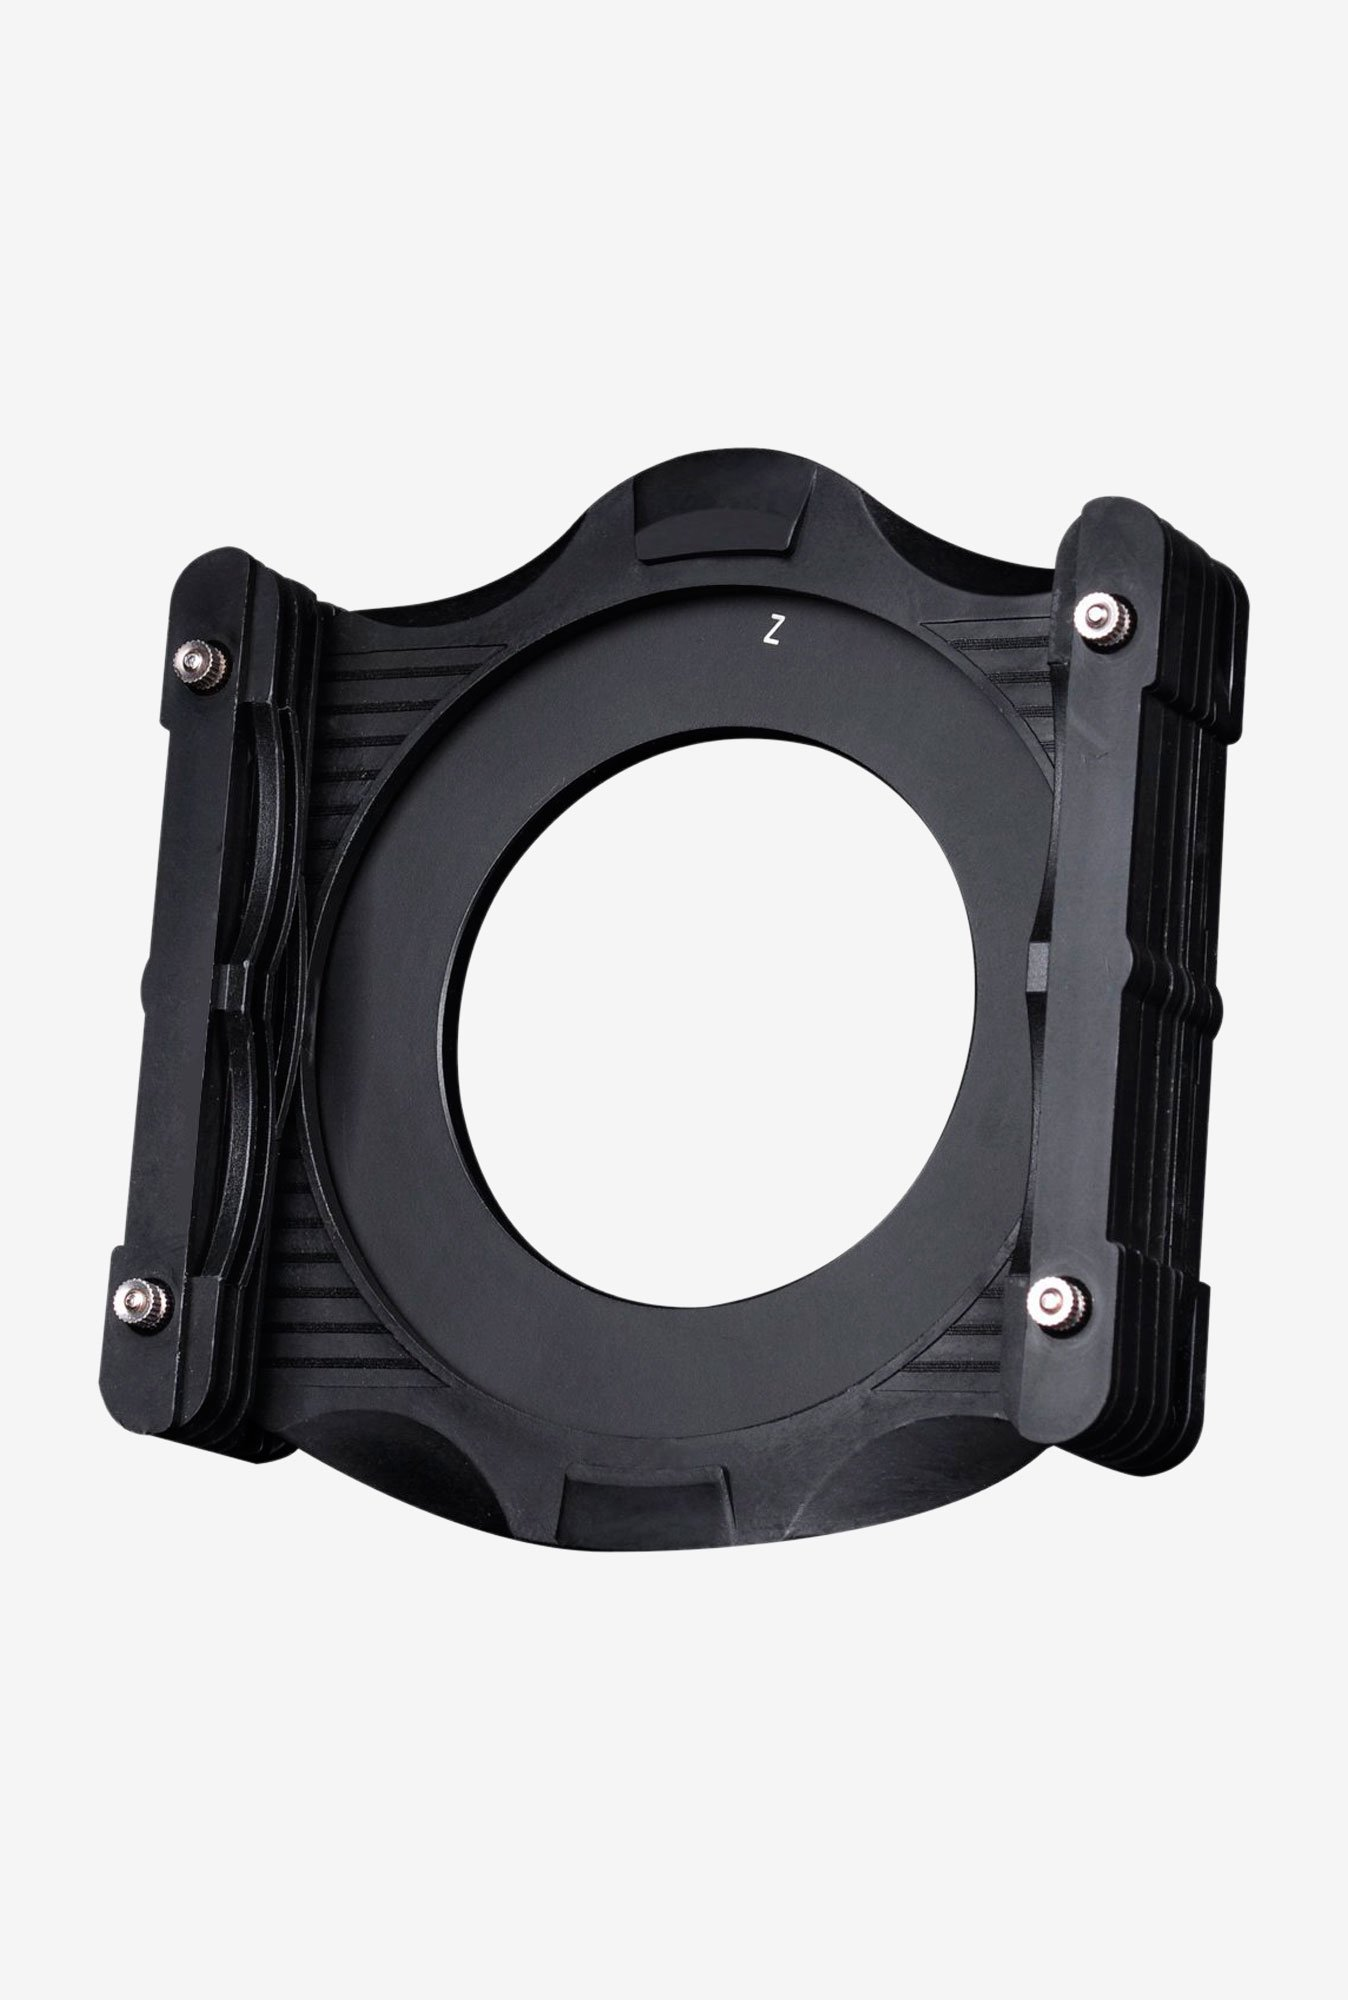 ZOMEi Square Z series FHMAR72 Filter Holder Black